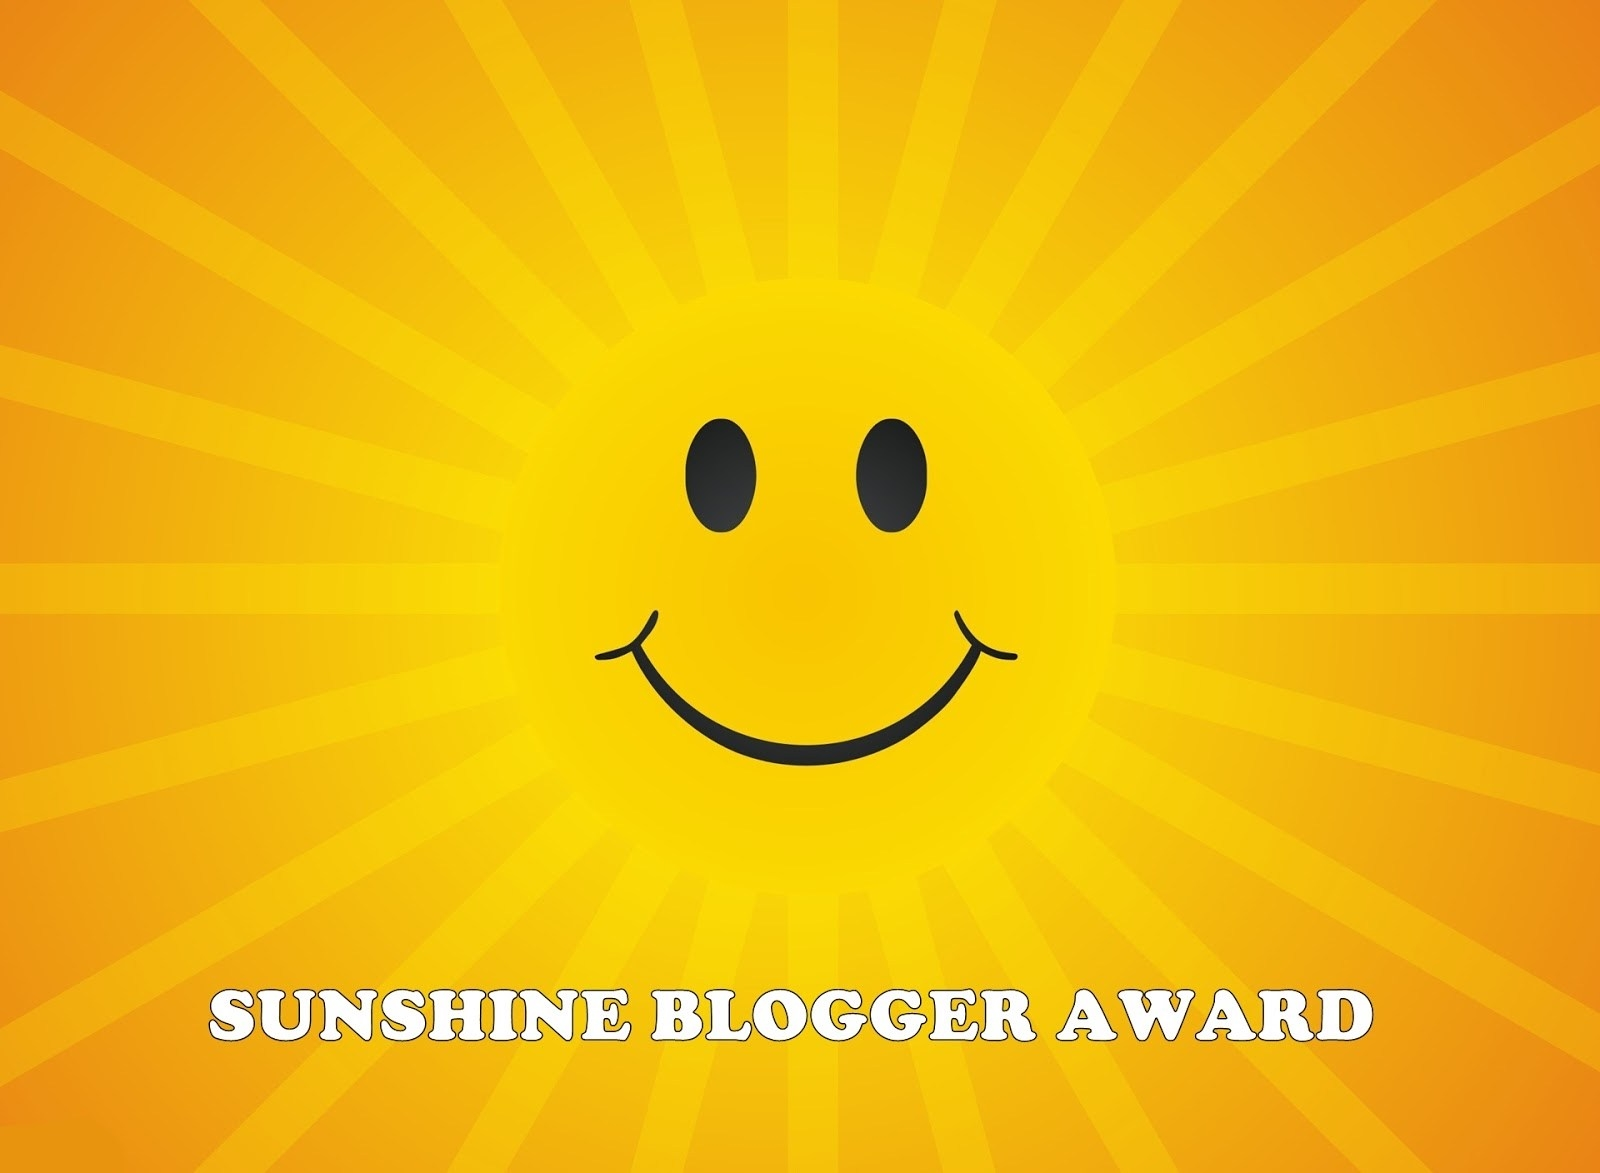 sunshine blogger award smiley face